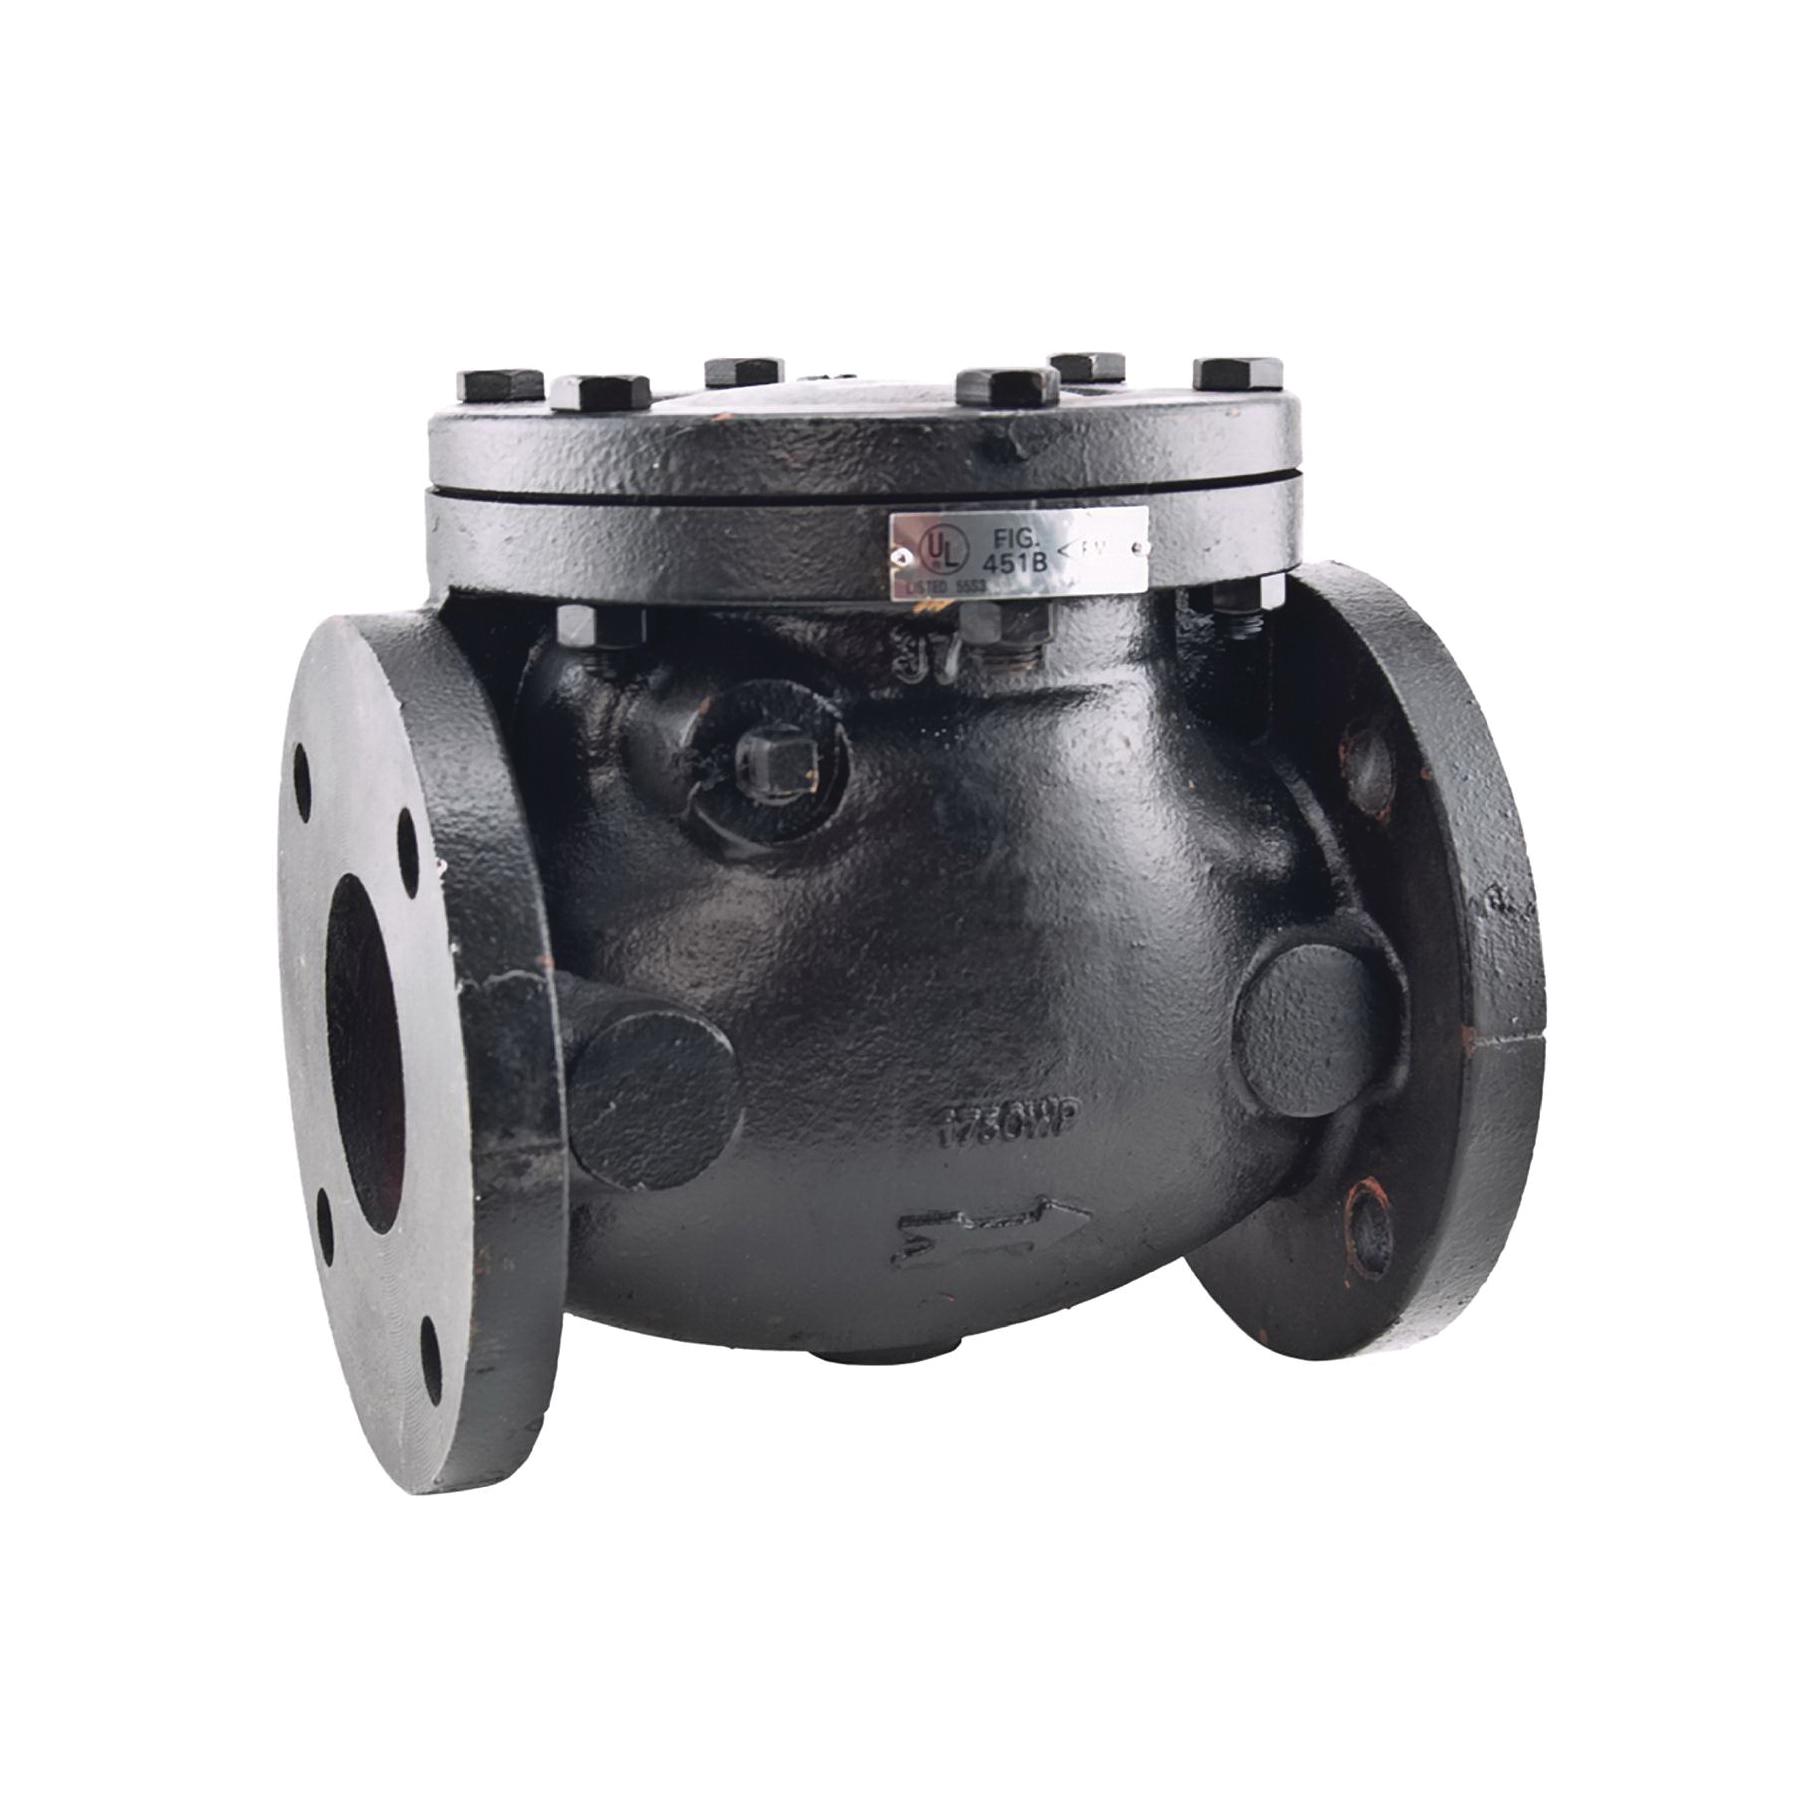 WATTS® 0390020 411 Swing Check Valve With Resilient Disc Seat, 3 in, Flange, 125 lb, Cast Iron Body